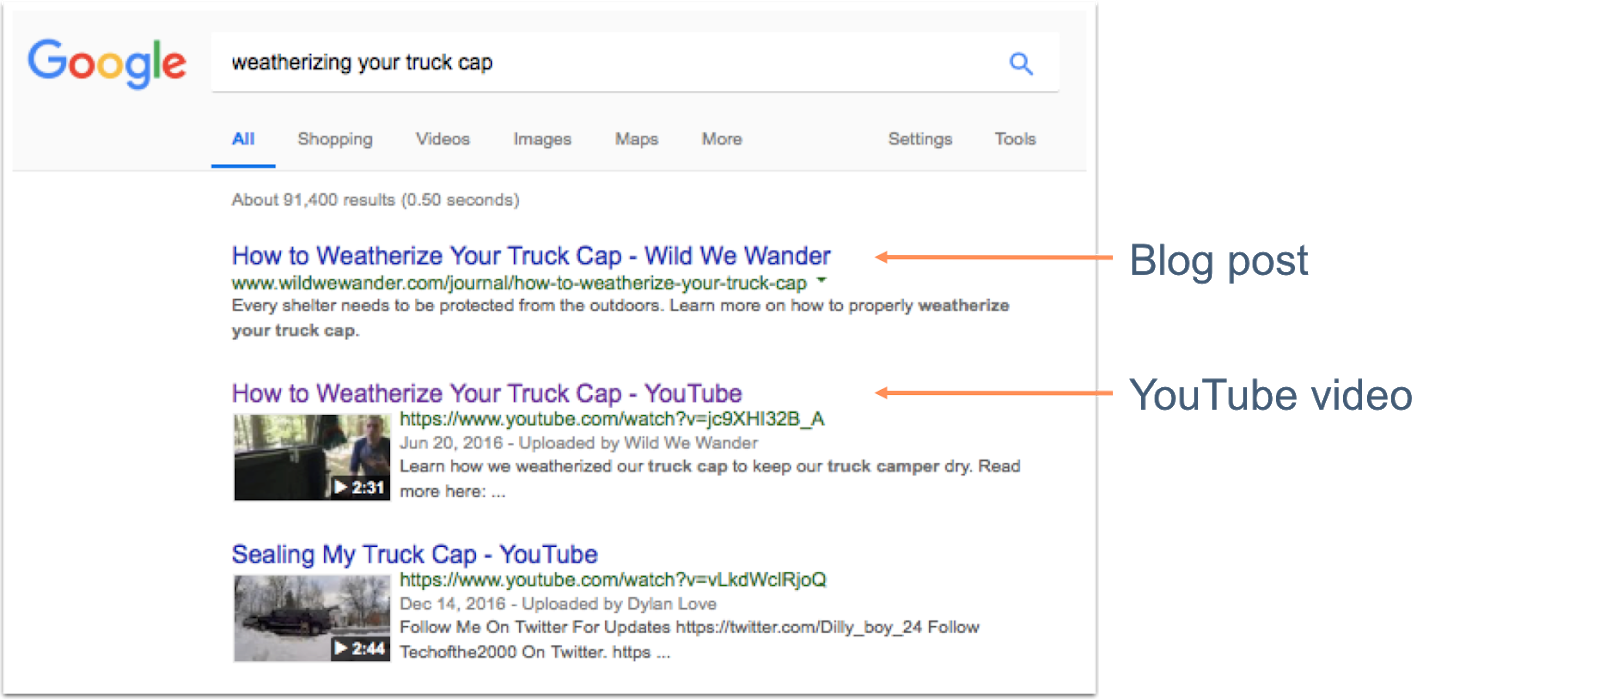 Google search results displaying YouTube